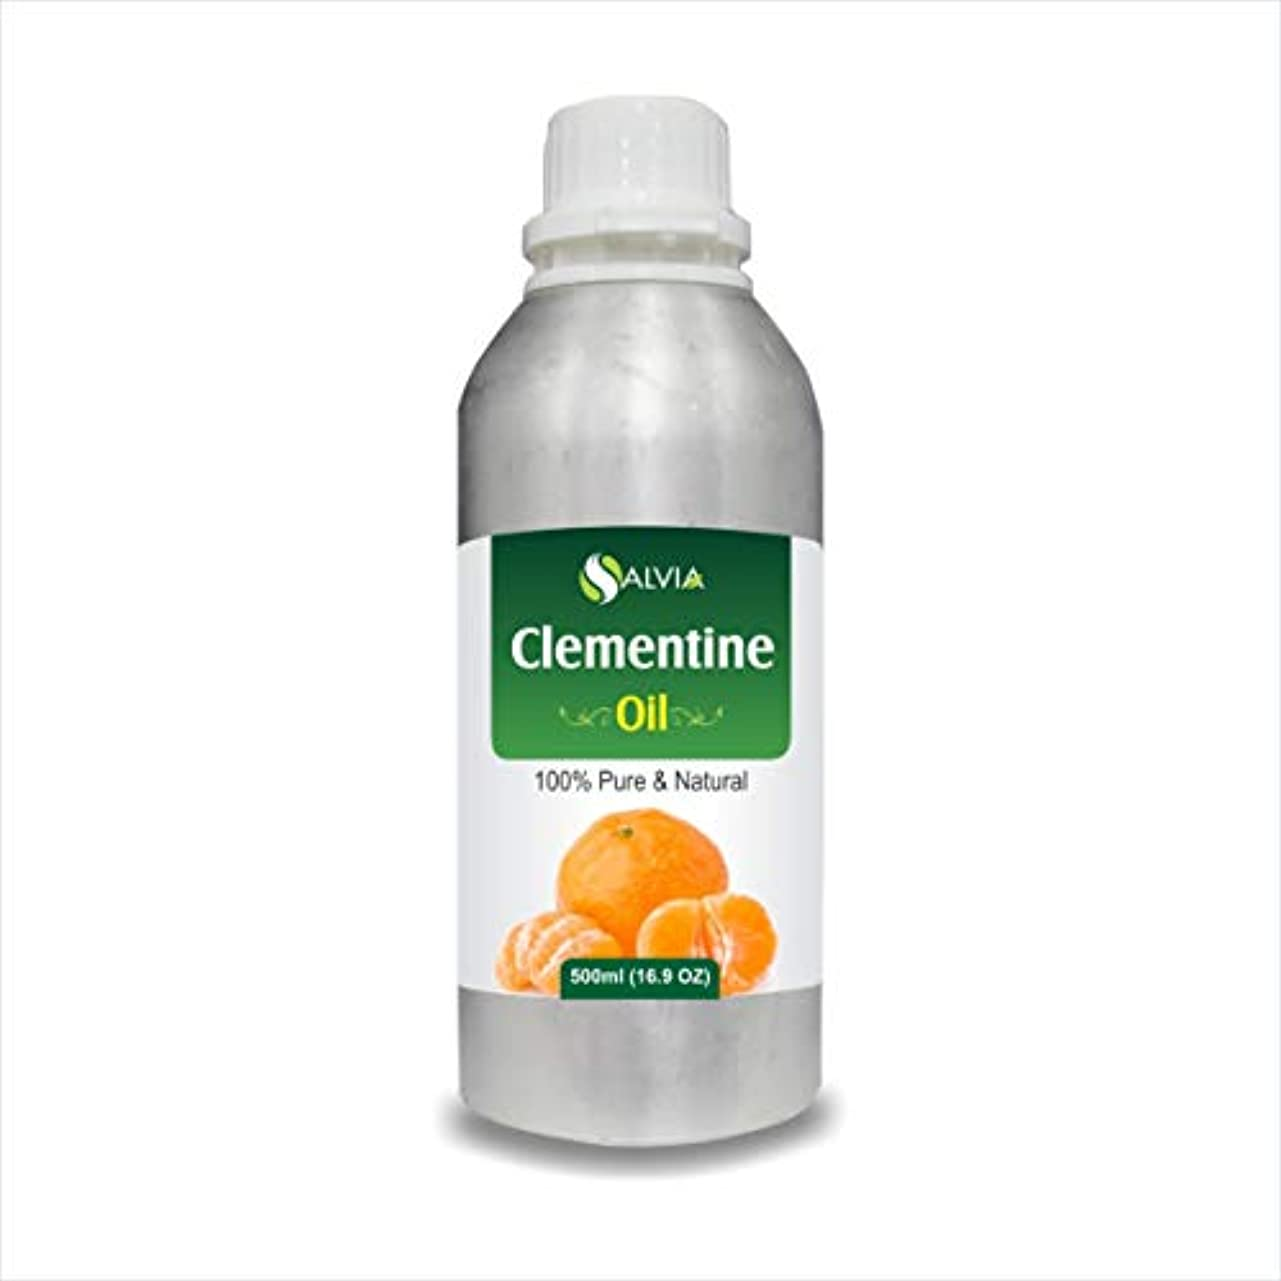 爆発する建築独立したClementine Oil (Citrus Clementine) 100% Natural Pure Undiluted Uncut Essential Oil 500ml